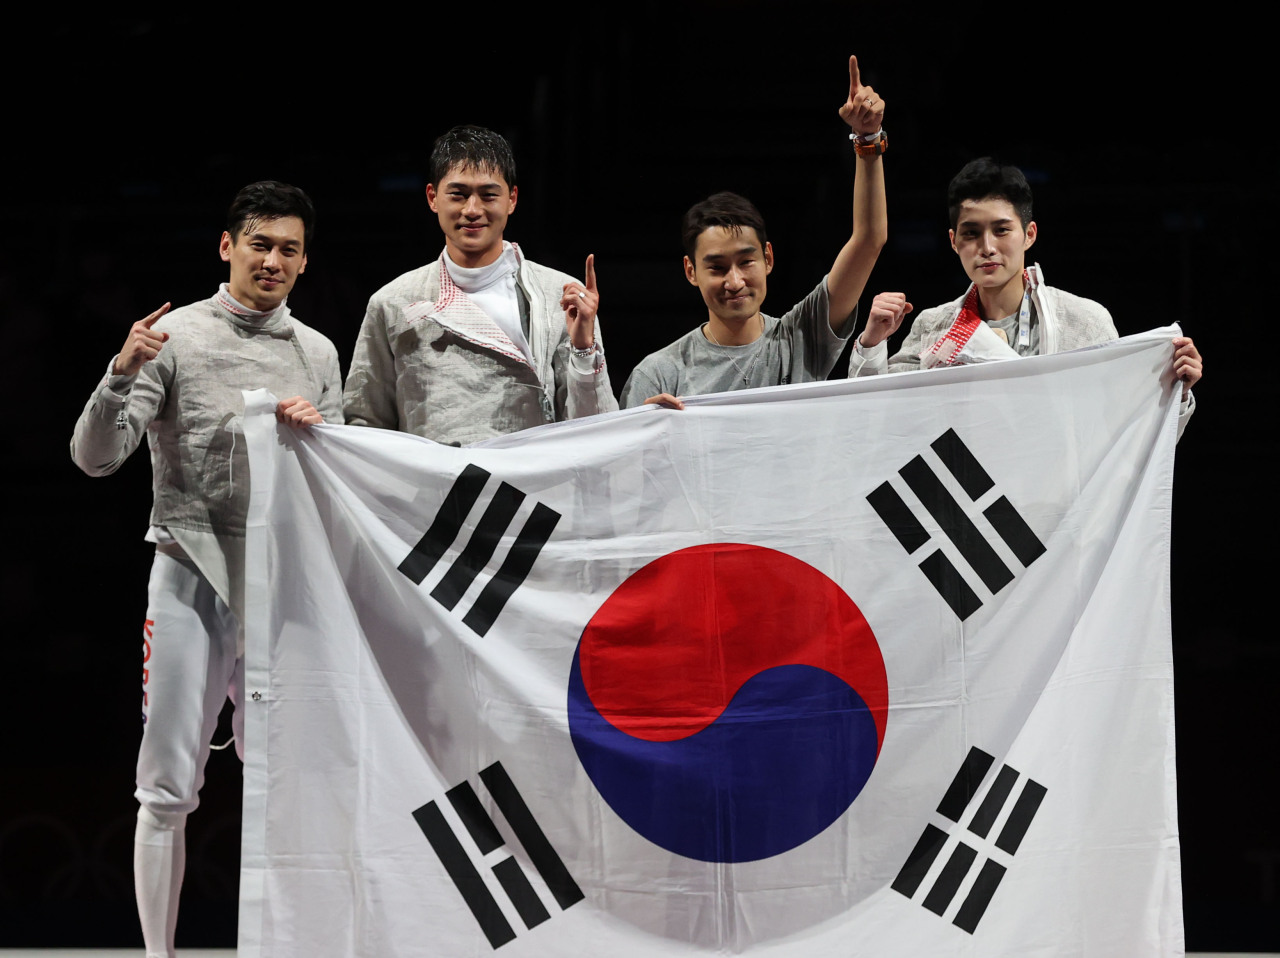 South Korean fencers Gu Bon-gil, Oh Sang-uk, Kim Jung-hwan and Kim Jun-ho (L to R) celebrate their victory over Italy in the final of the men's team sabre fencing event at the Tokyo Olympics at Makuhari Messe Hall B in Chiba, Japan, on Wednesday. (Yonhap)